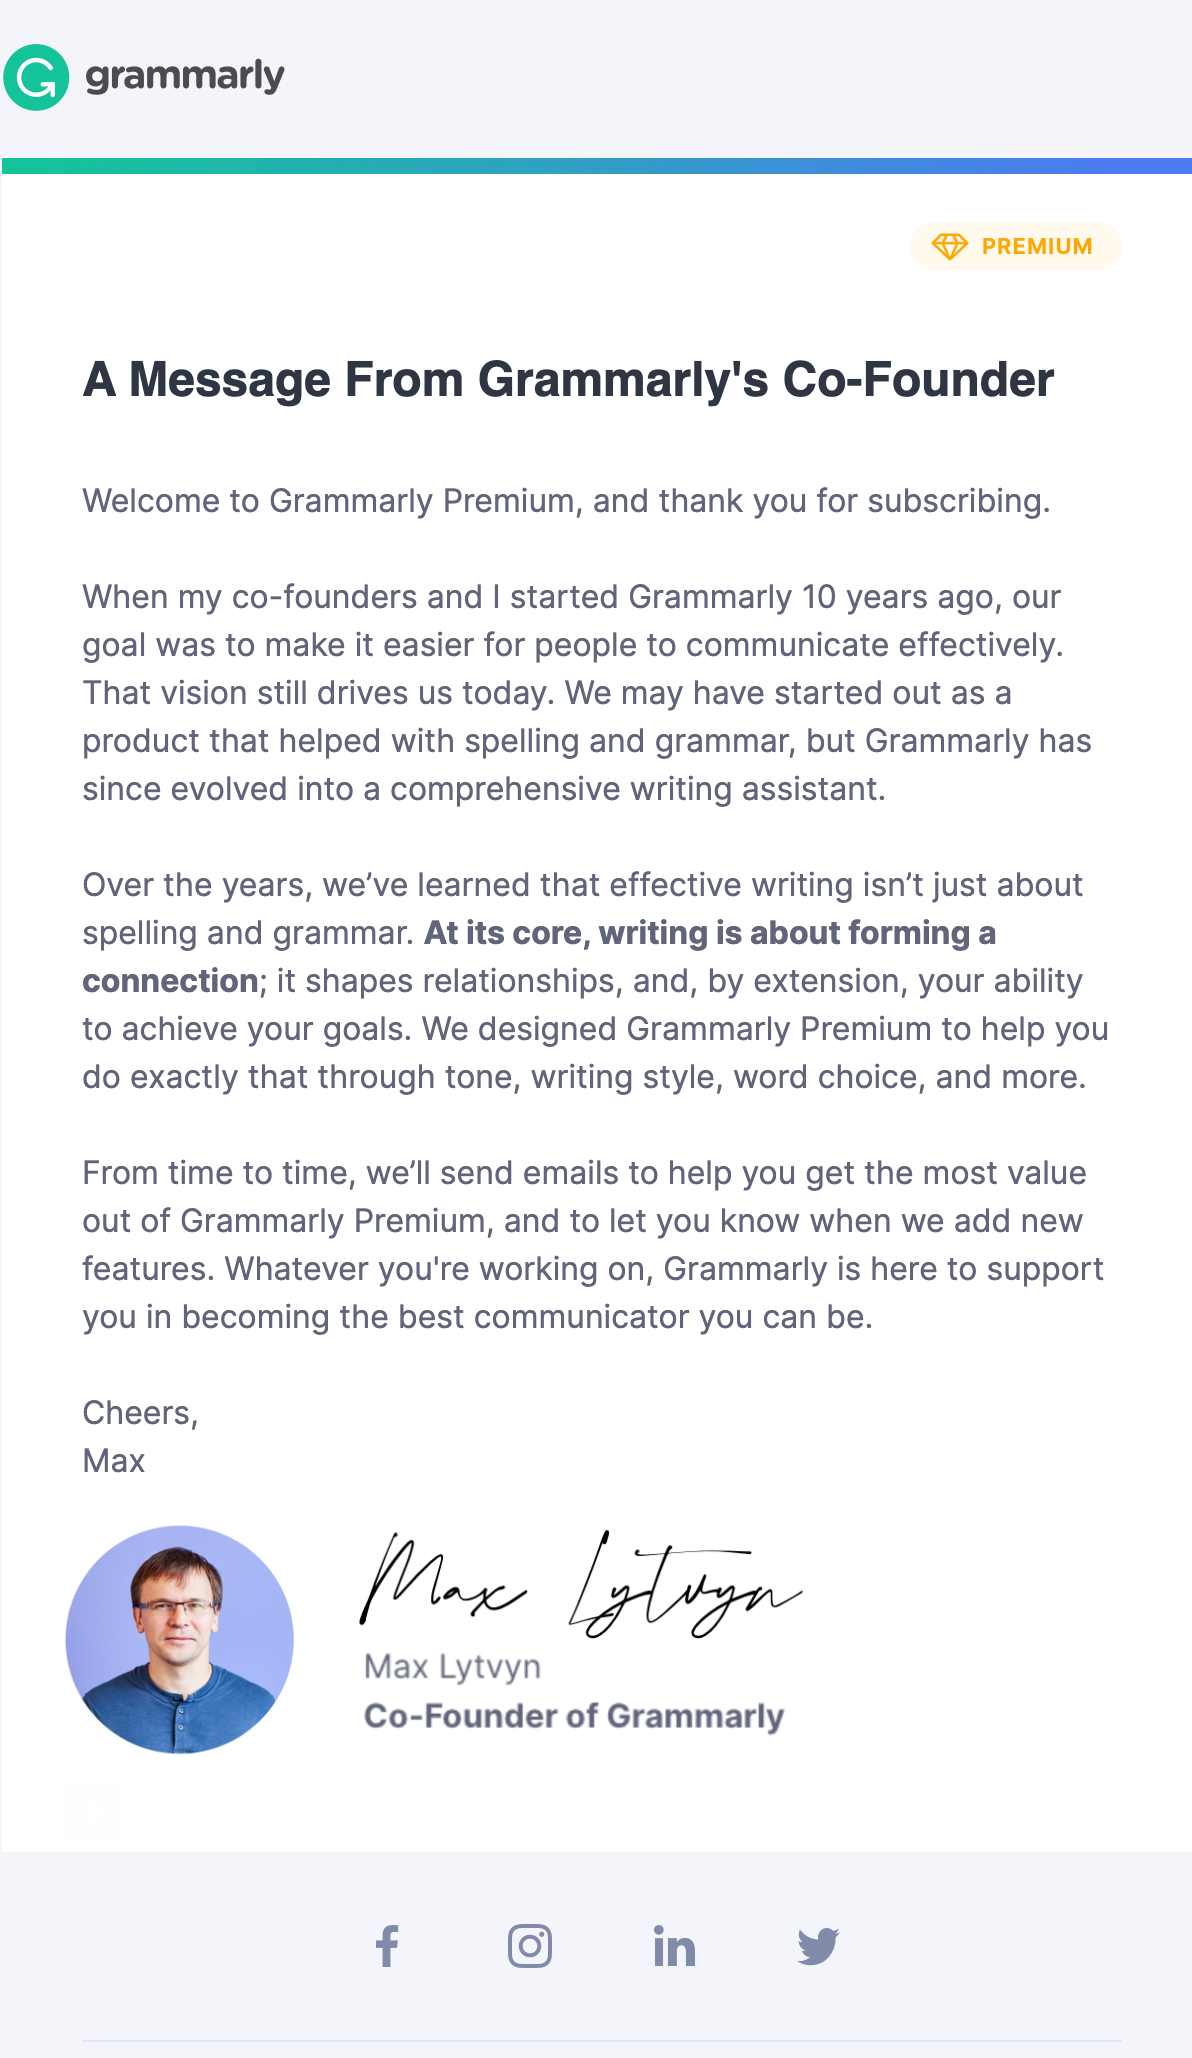 grammarly message from founder